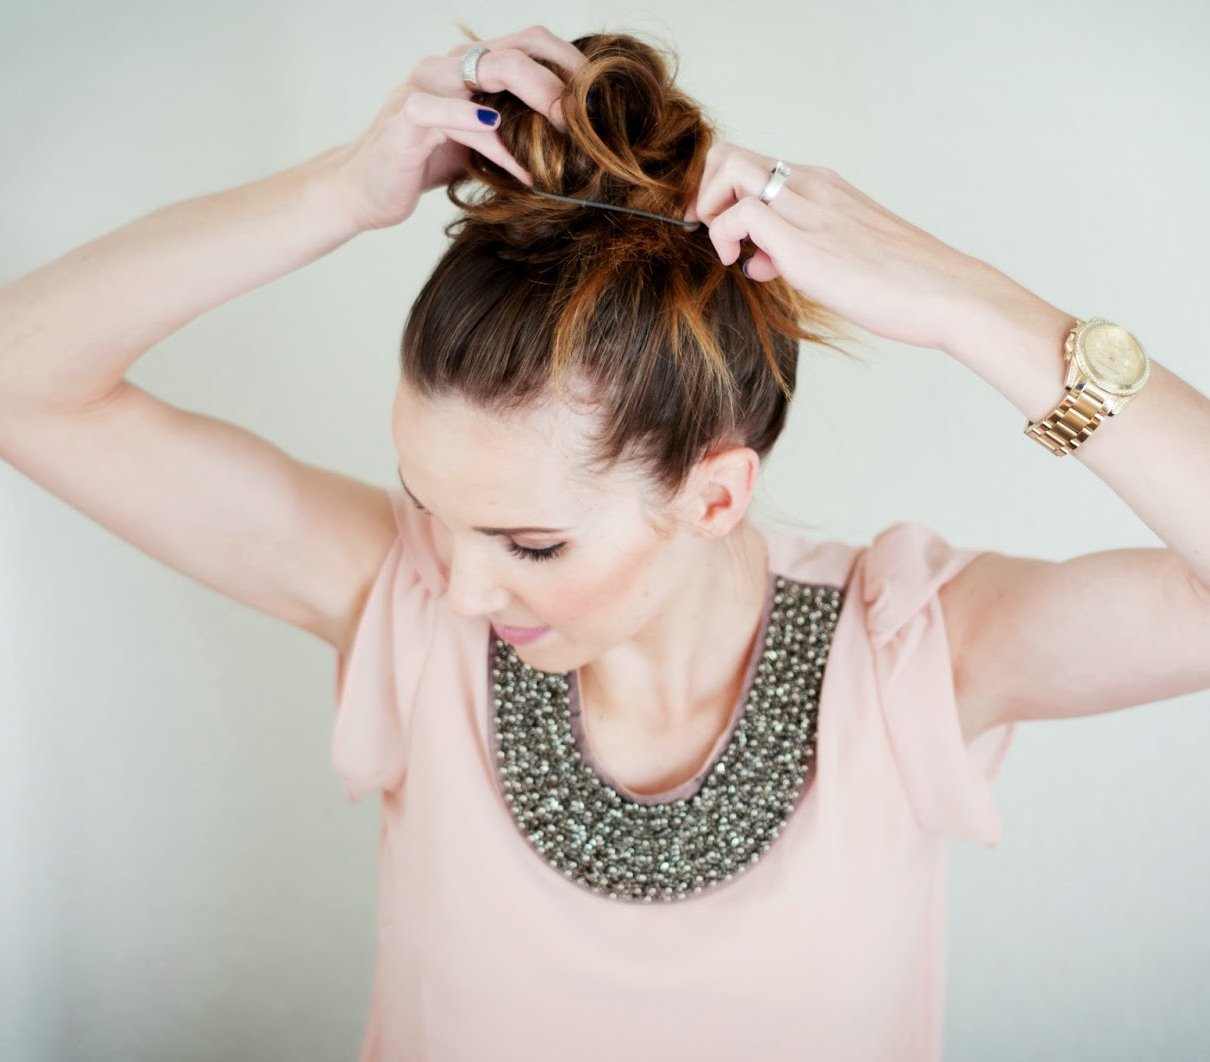 Magnificent Messy Topknot 6 Easy Topknots For Any Occasion Real Simple Short Hairstyles Gunalazisus